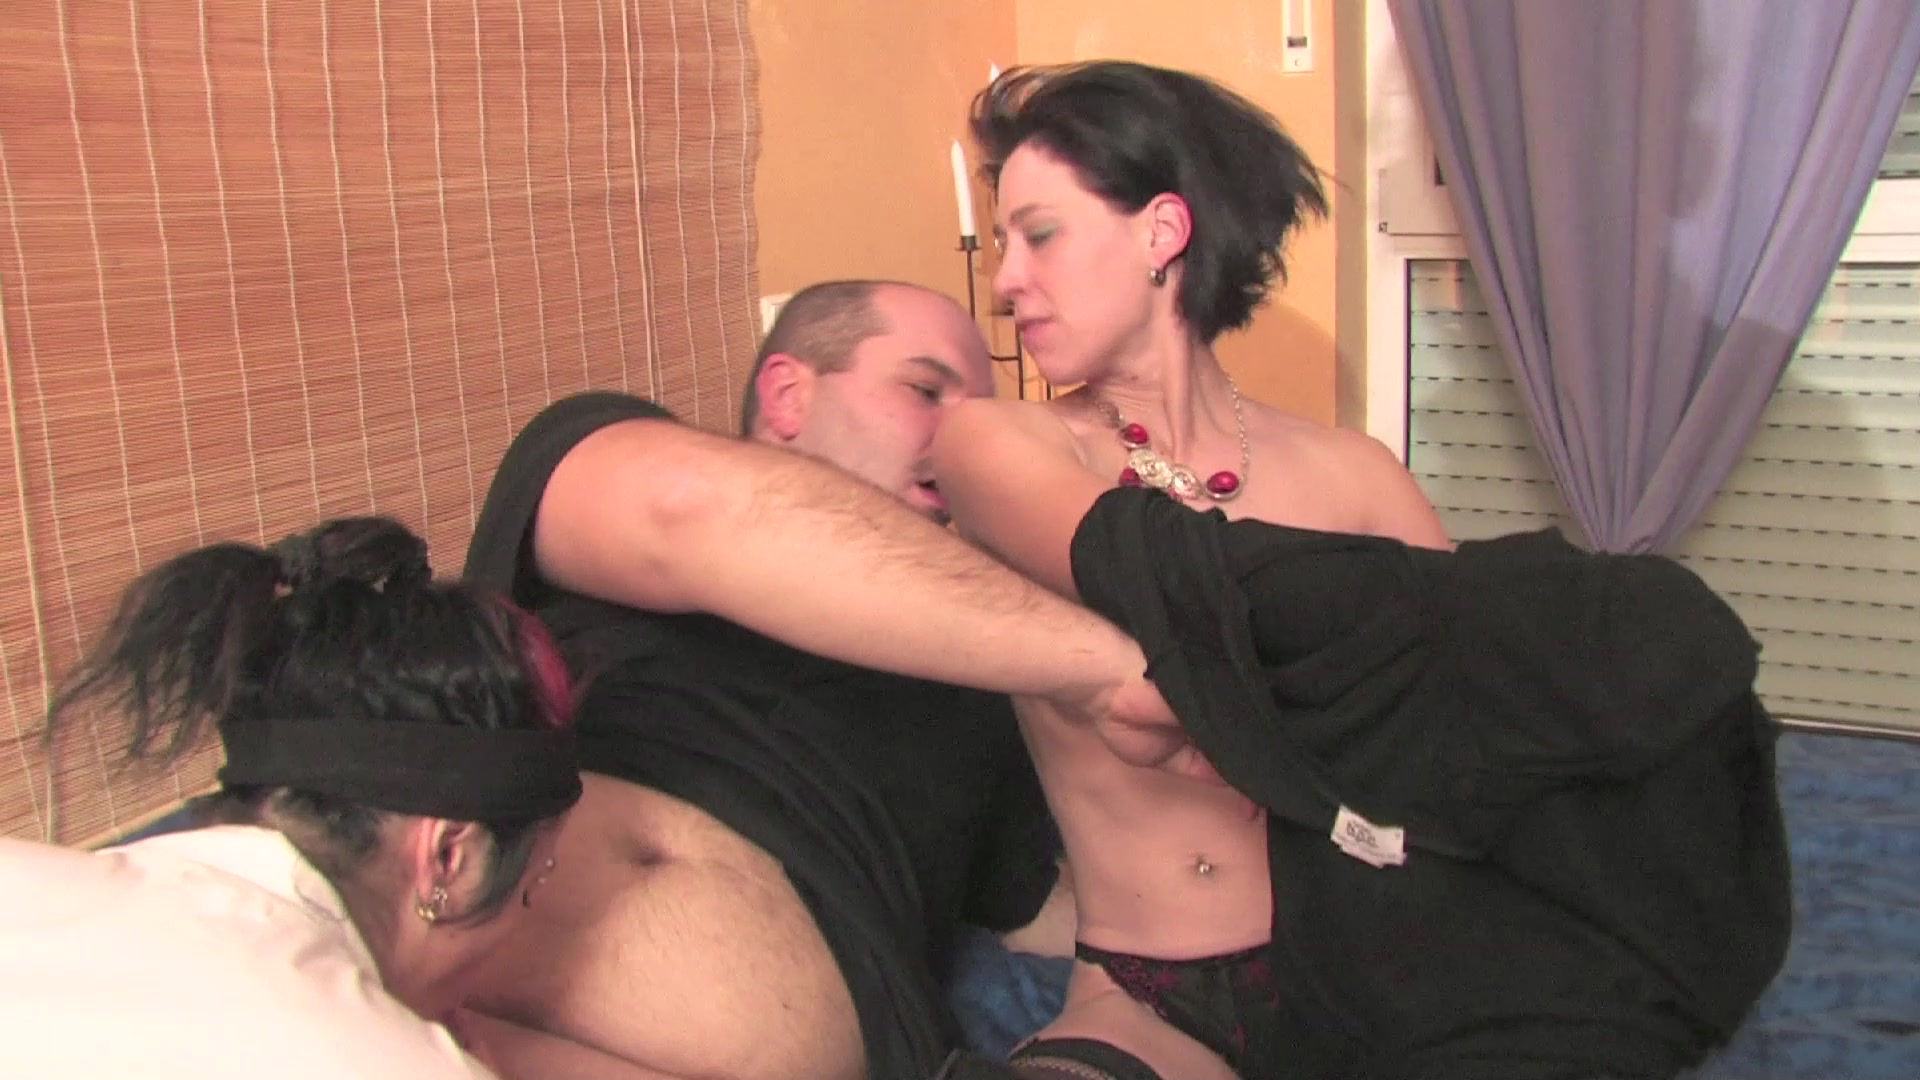 ficktreffen video Offenburg